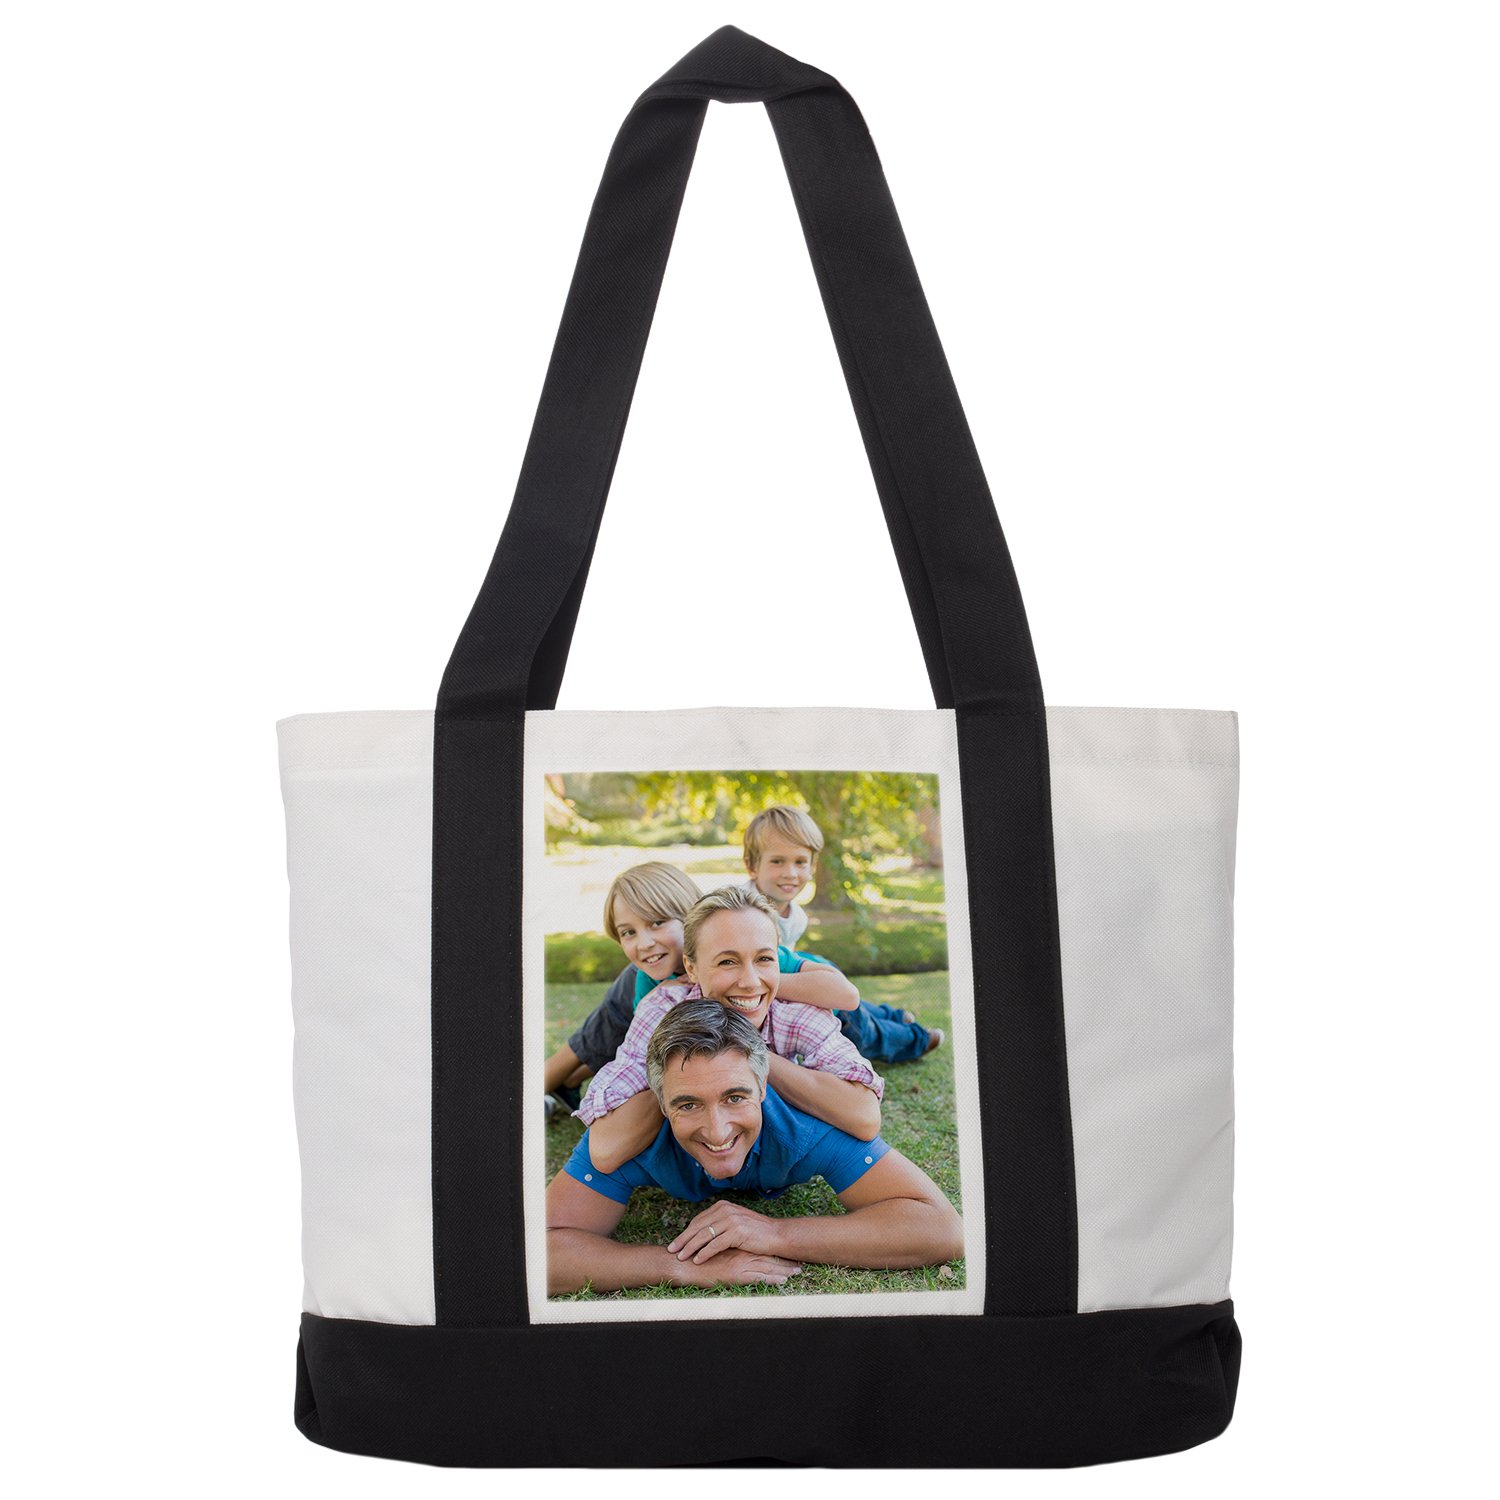 Custom bags for 10 year anniversary gift ideas